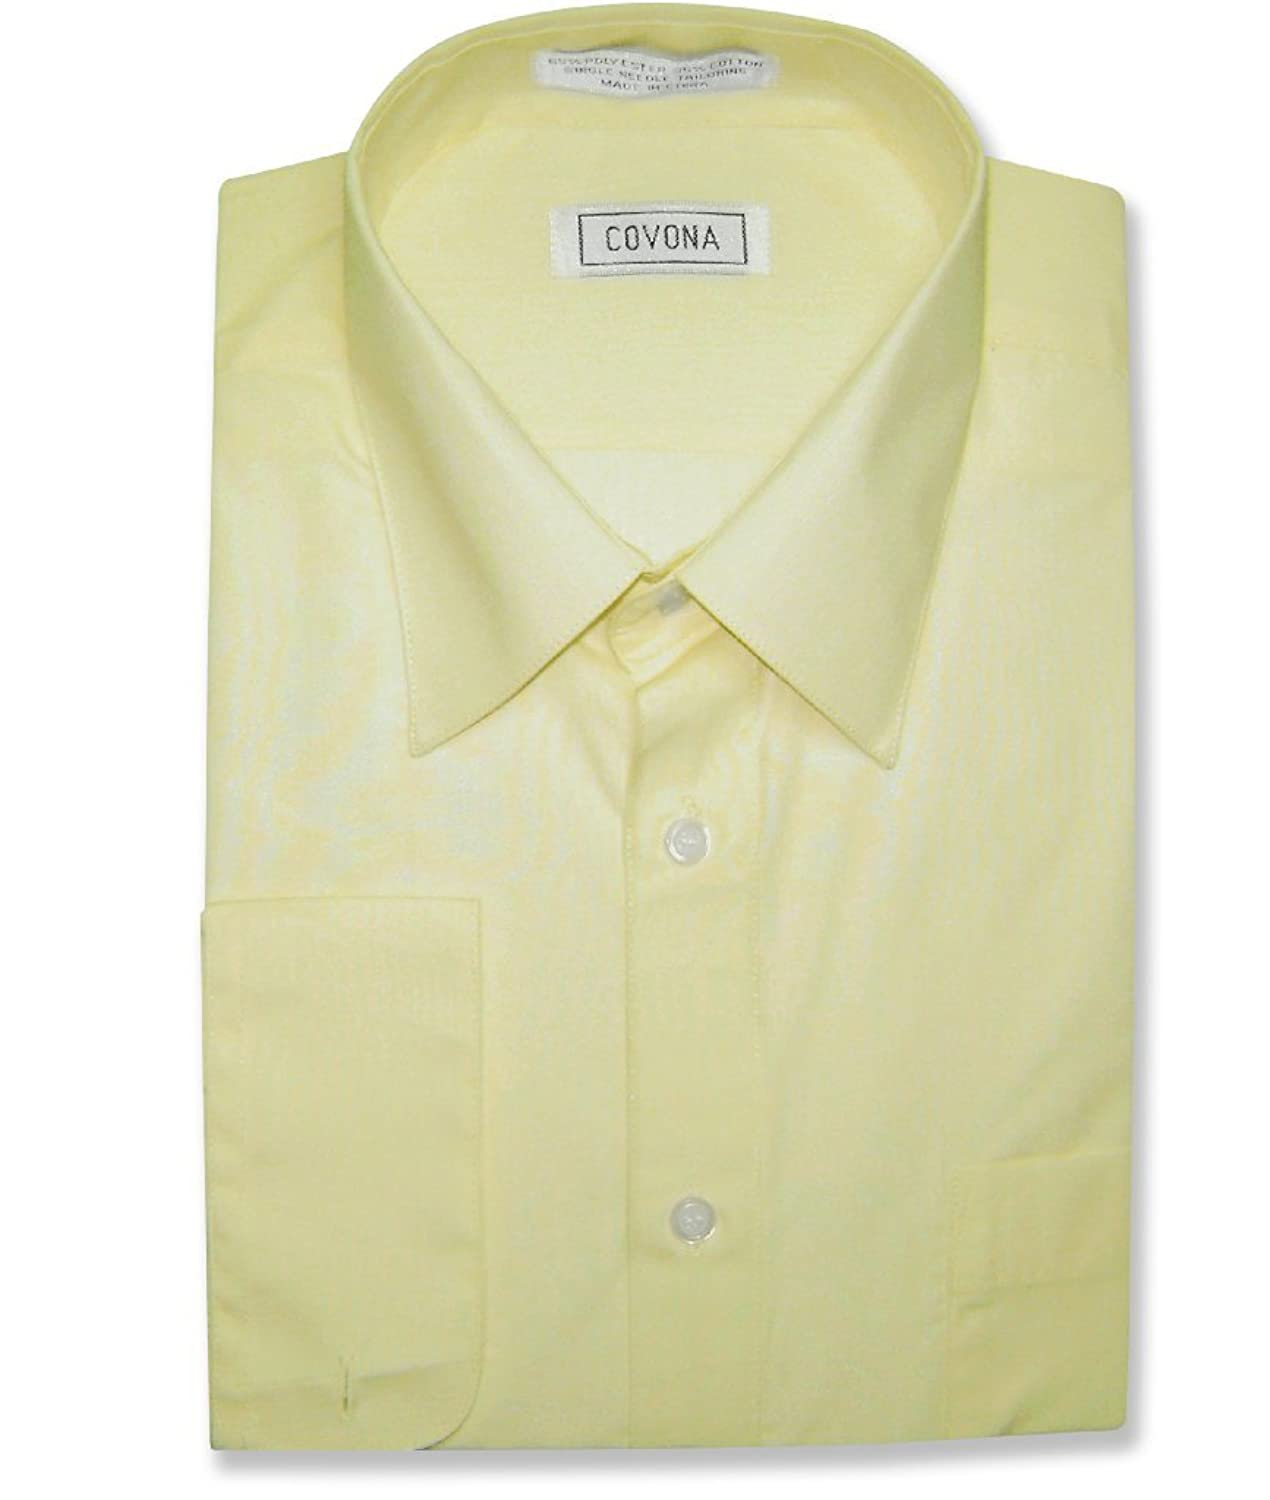 Men's Solid YELLOW Lemon Color Dress Shirt w/ Convertible Cuffs at ...